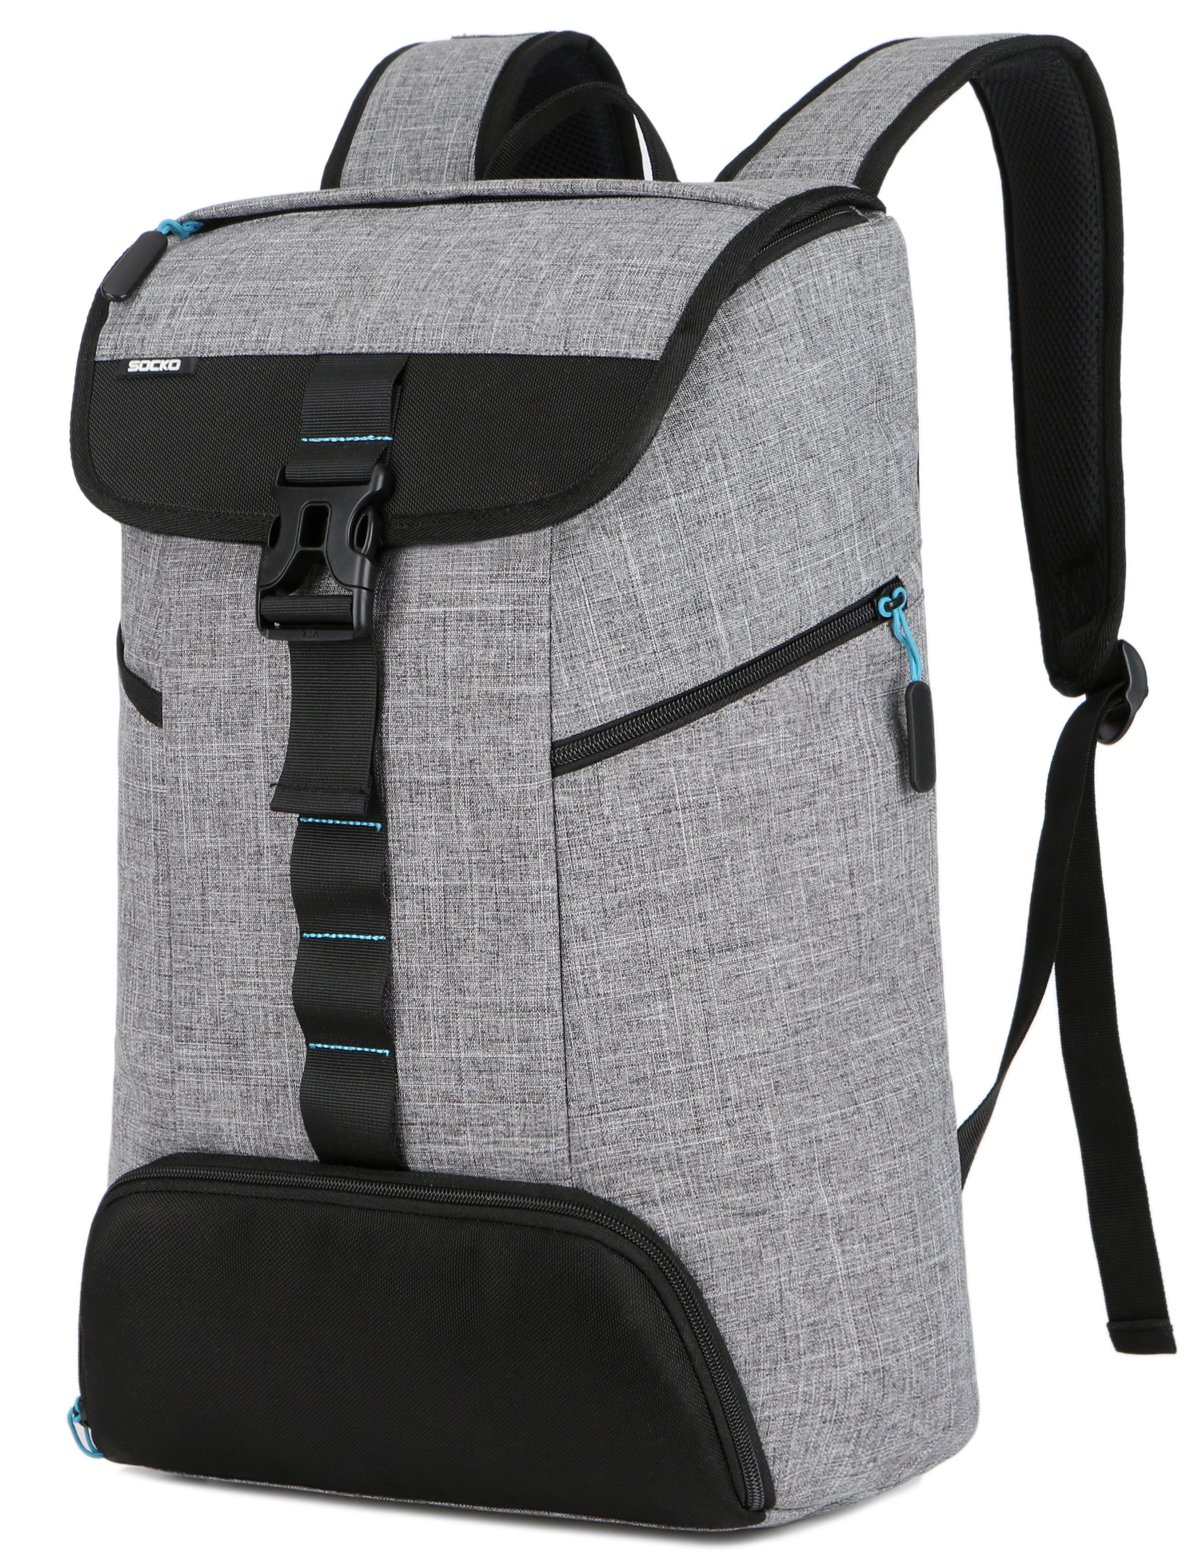 Laptop Backpack 17 Inch for Women/Men,SOCKO Multi-functional Water Resistant Causal Daypack/Sport Gym Bag with Shoes Pocket/College Travel Business Backpack for Laptops Up to 17.3 Inches,Grey